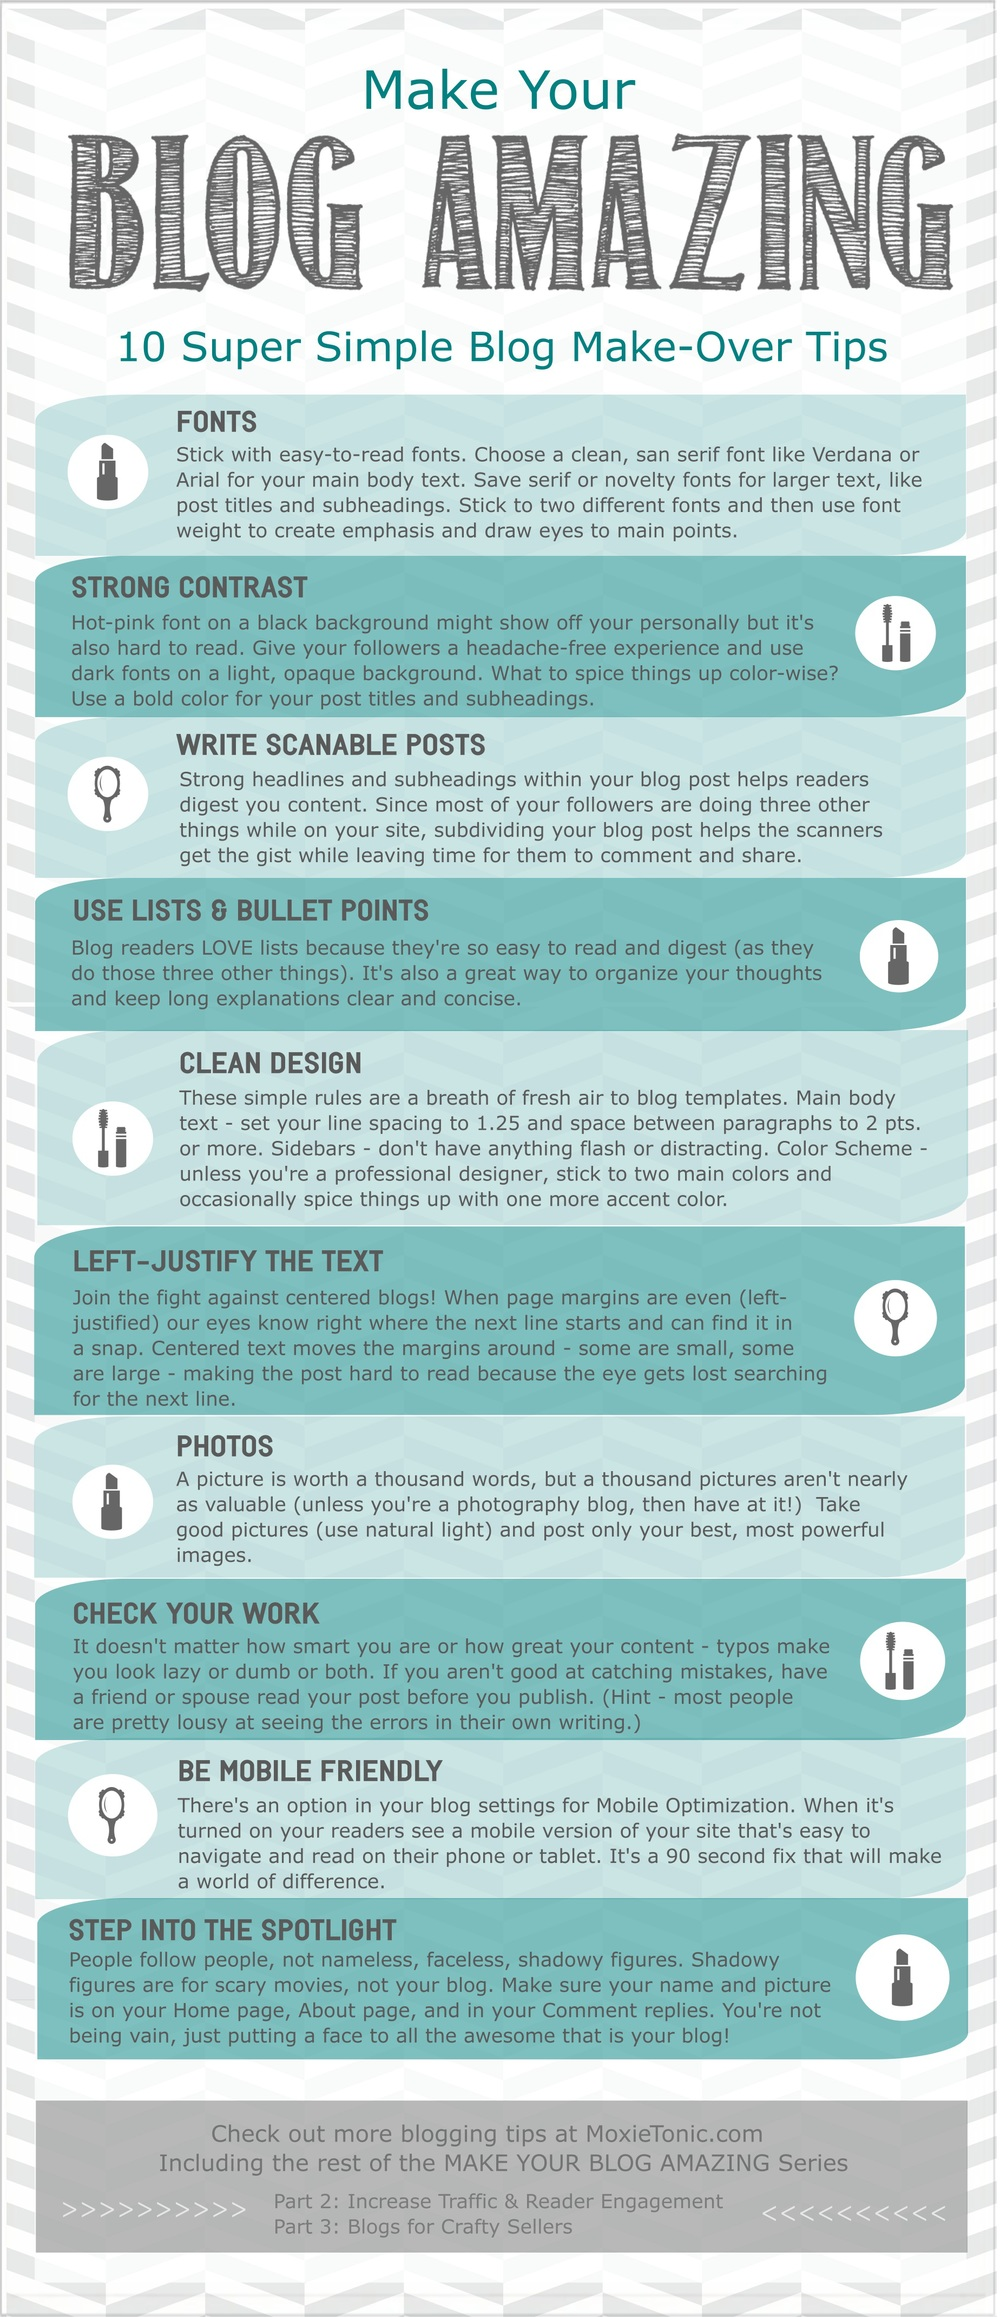 Improve Your  Blog with these 10 Simple Tips -- from MoxieTonic.biz